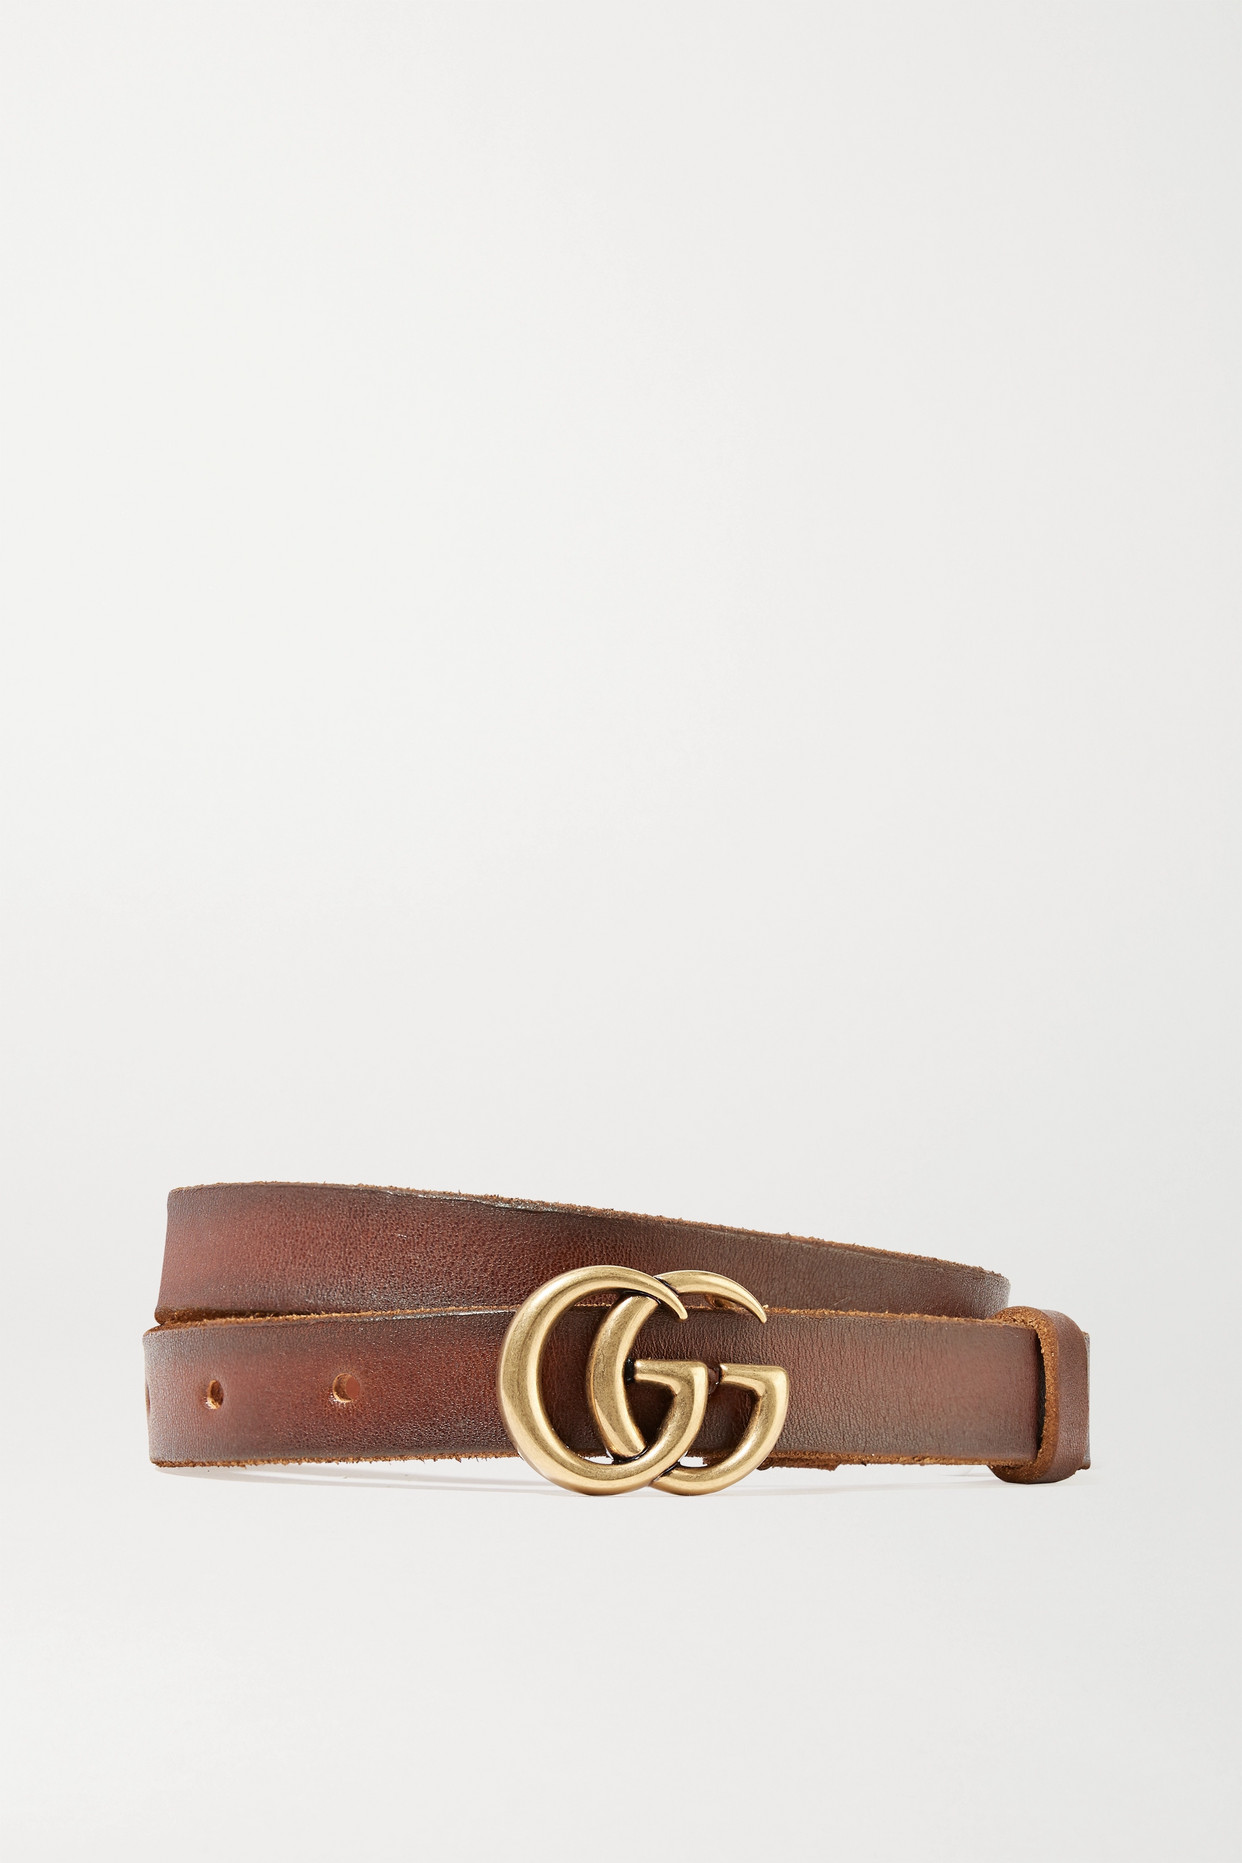 GUCCI - Leather Belt - Brown - 115